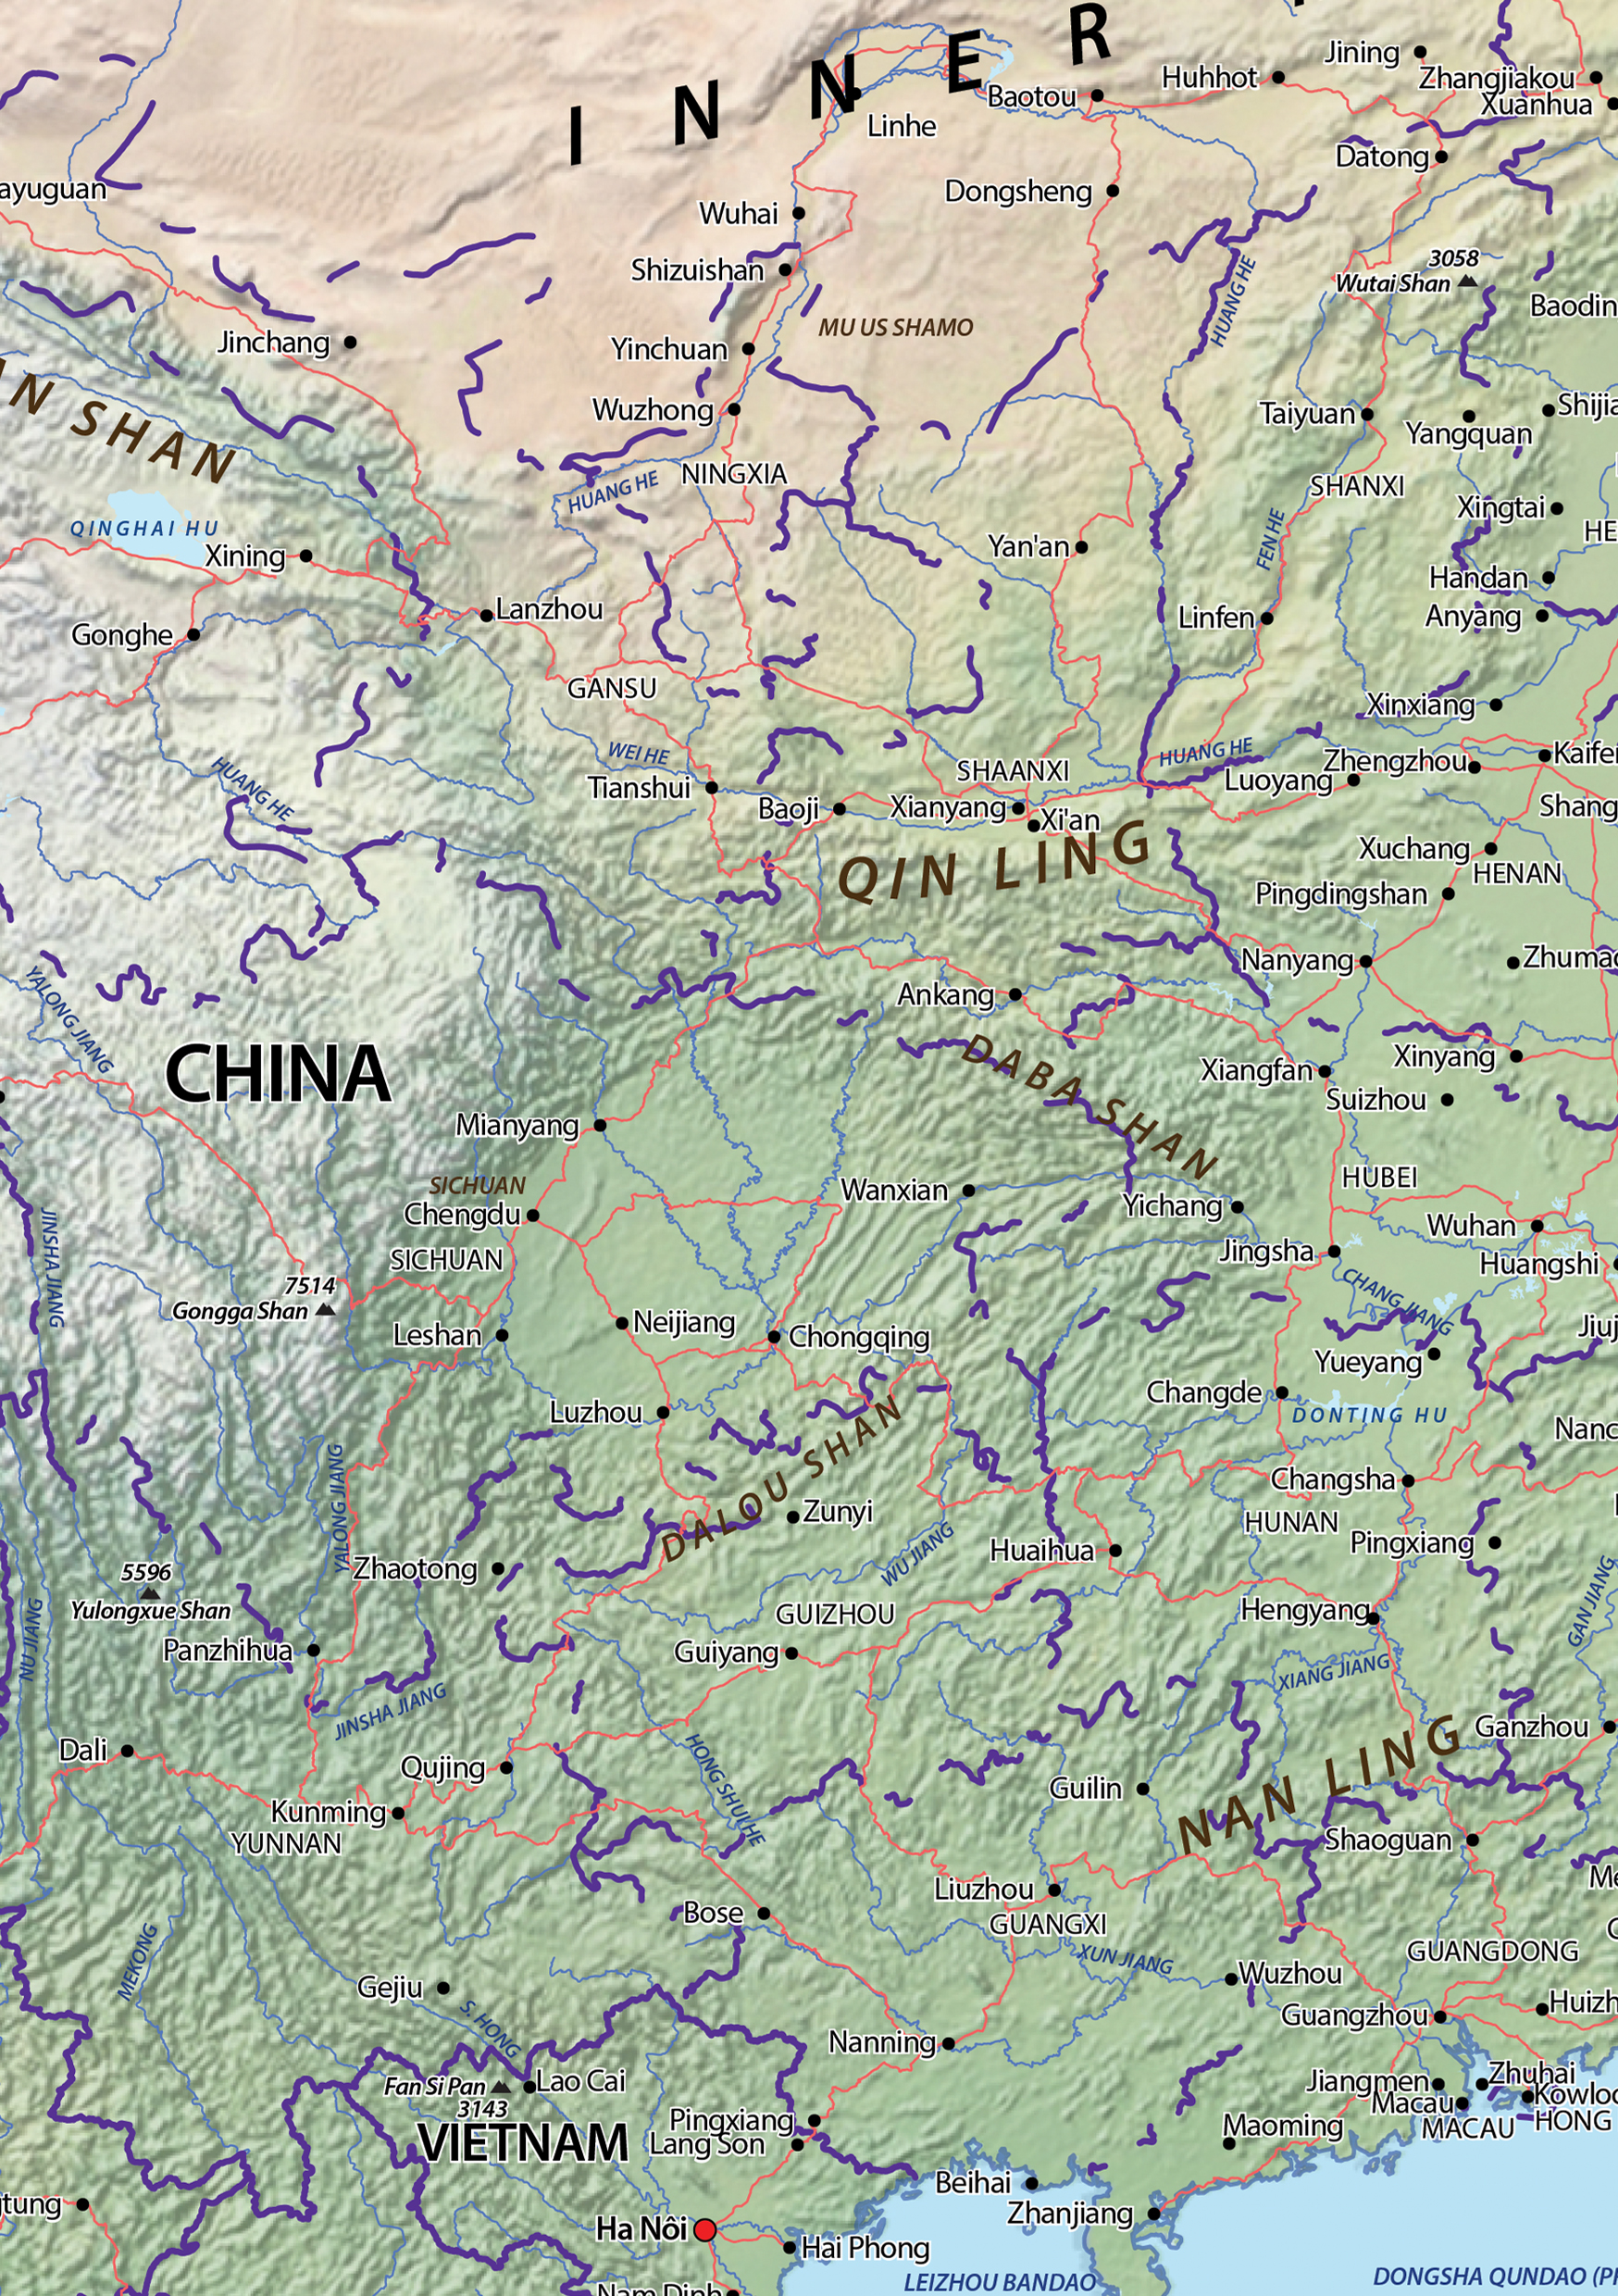 Digital Map Central Asia Physical The World Of Mapscom - Ankang map